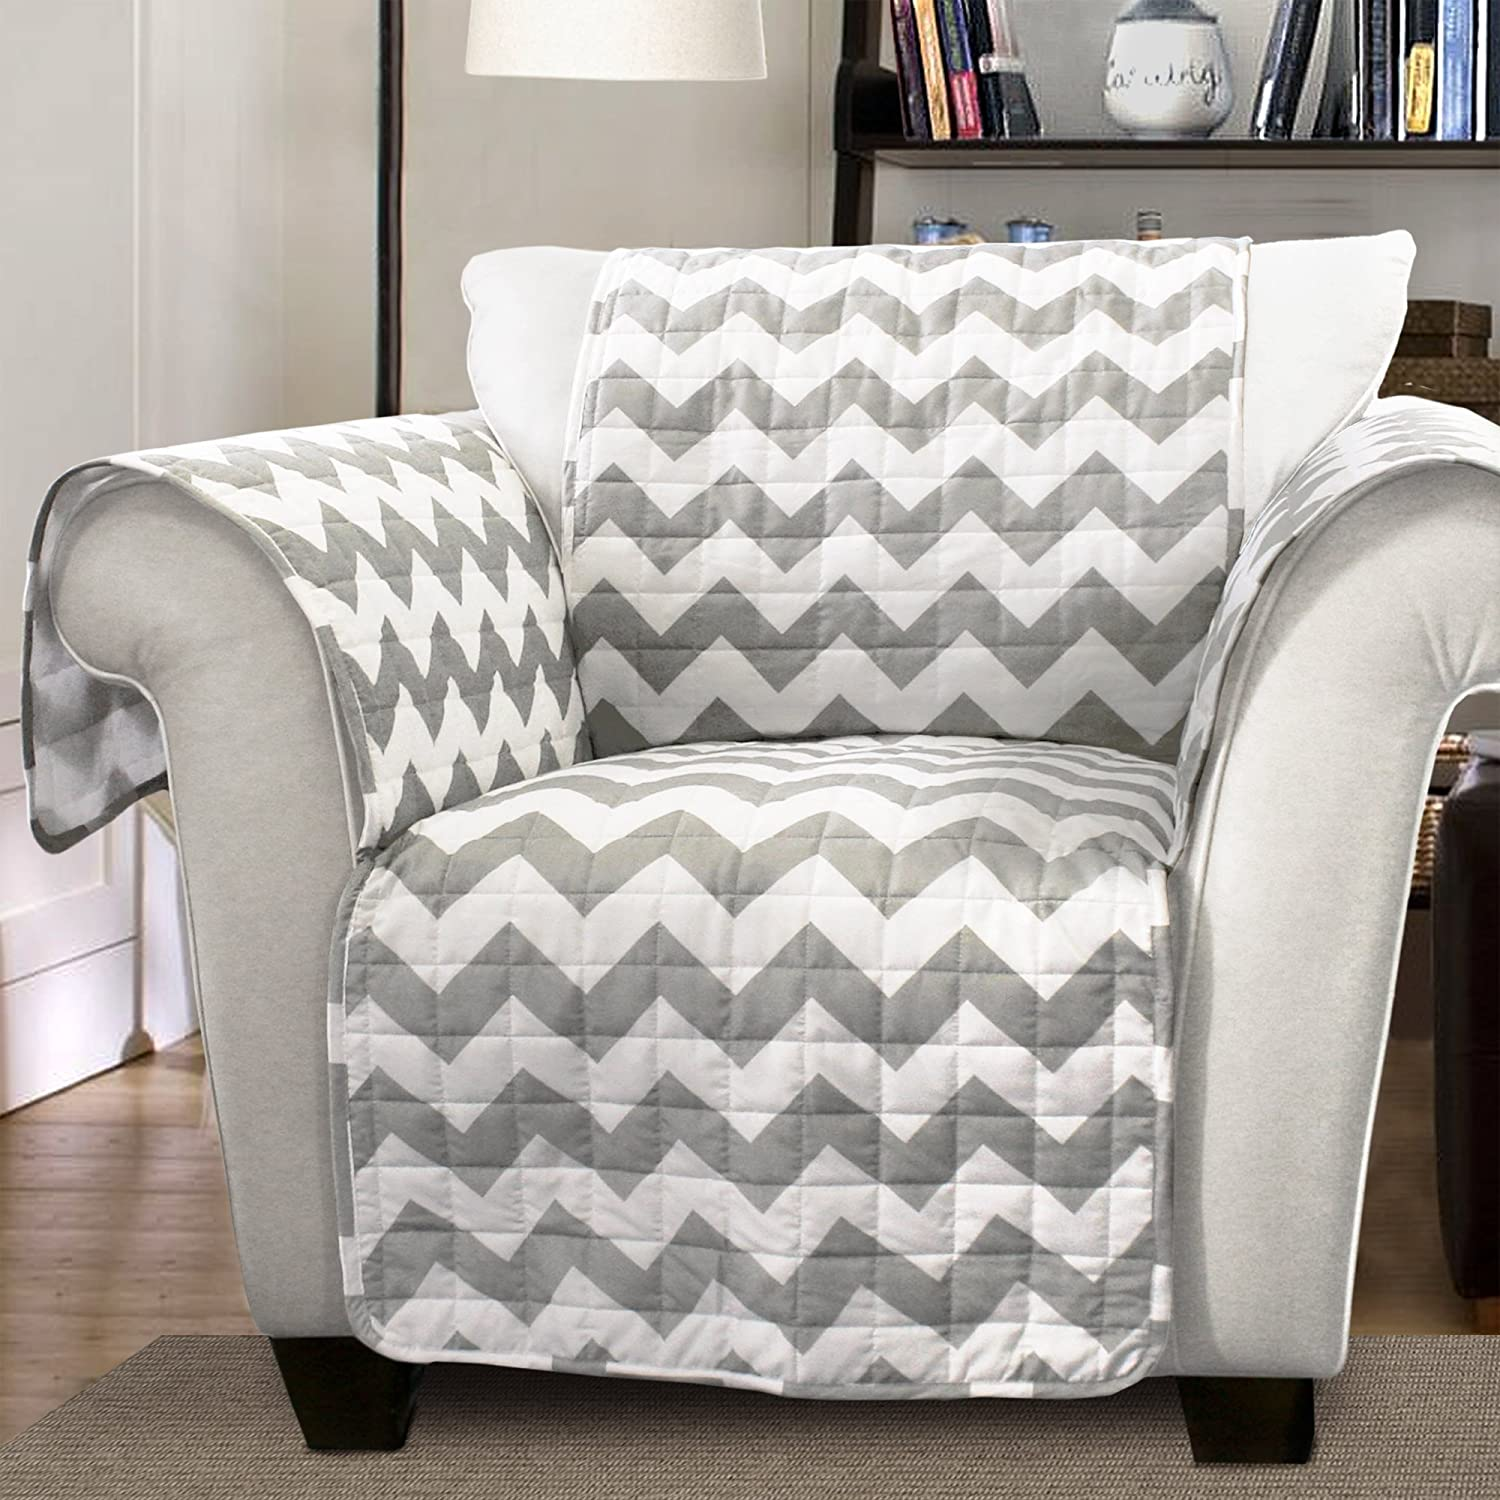 Fabulous Lush Decor Gray Chevron Slipcover Furniture Protector For Armchair White Andrewgaddart Wooden Chair Designs For Living Room Andrewgaddartcom